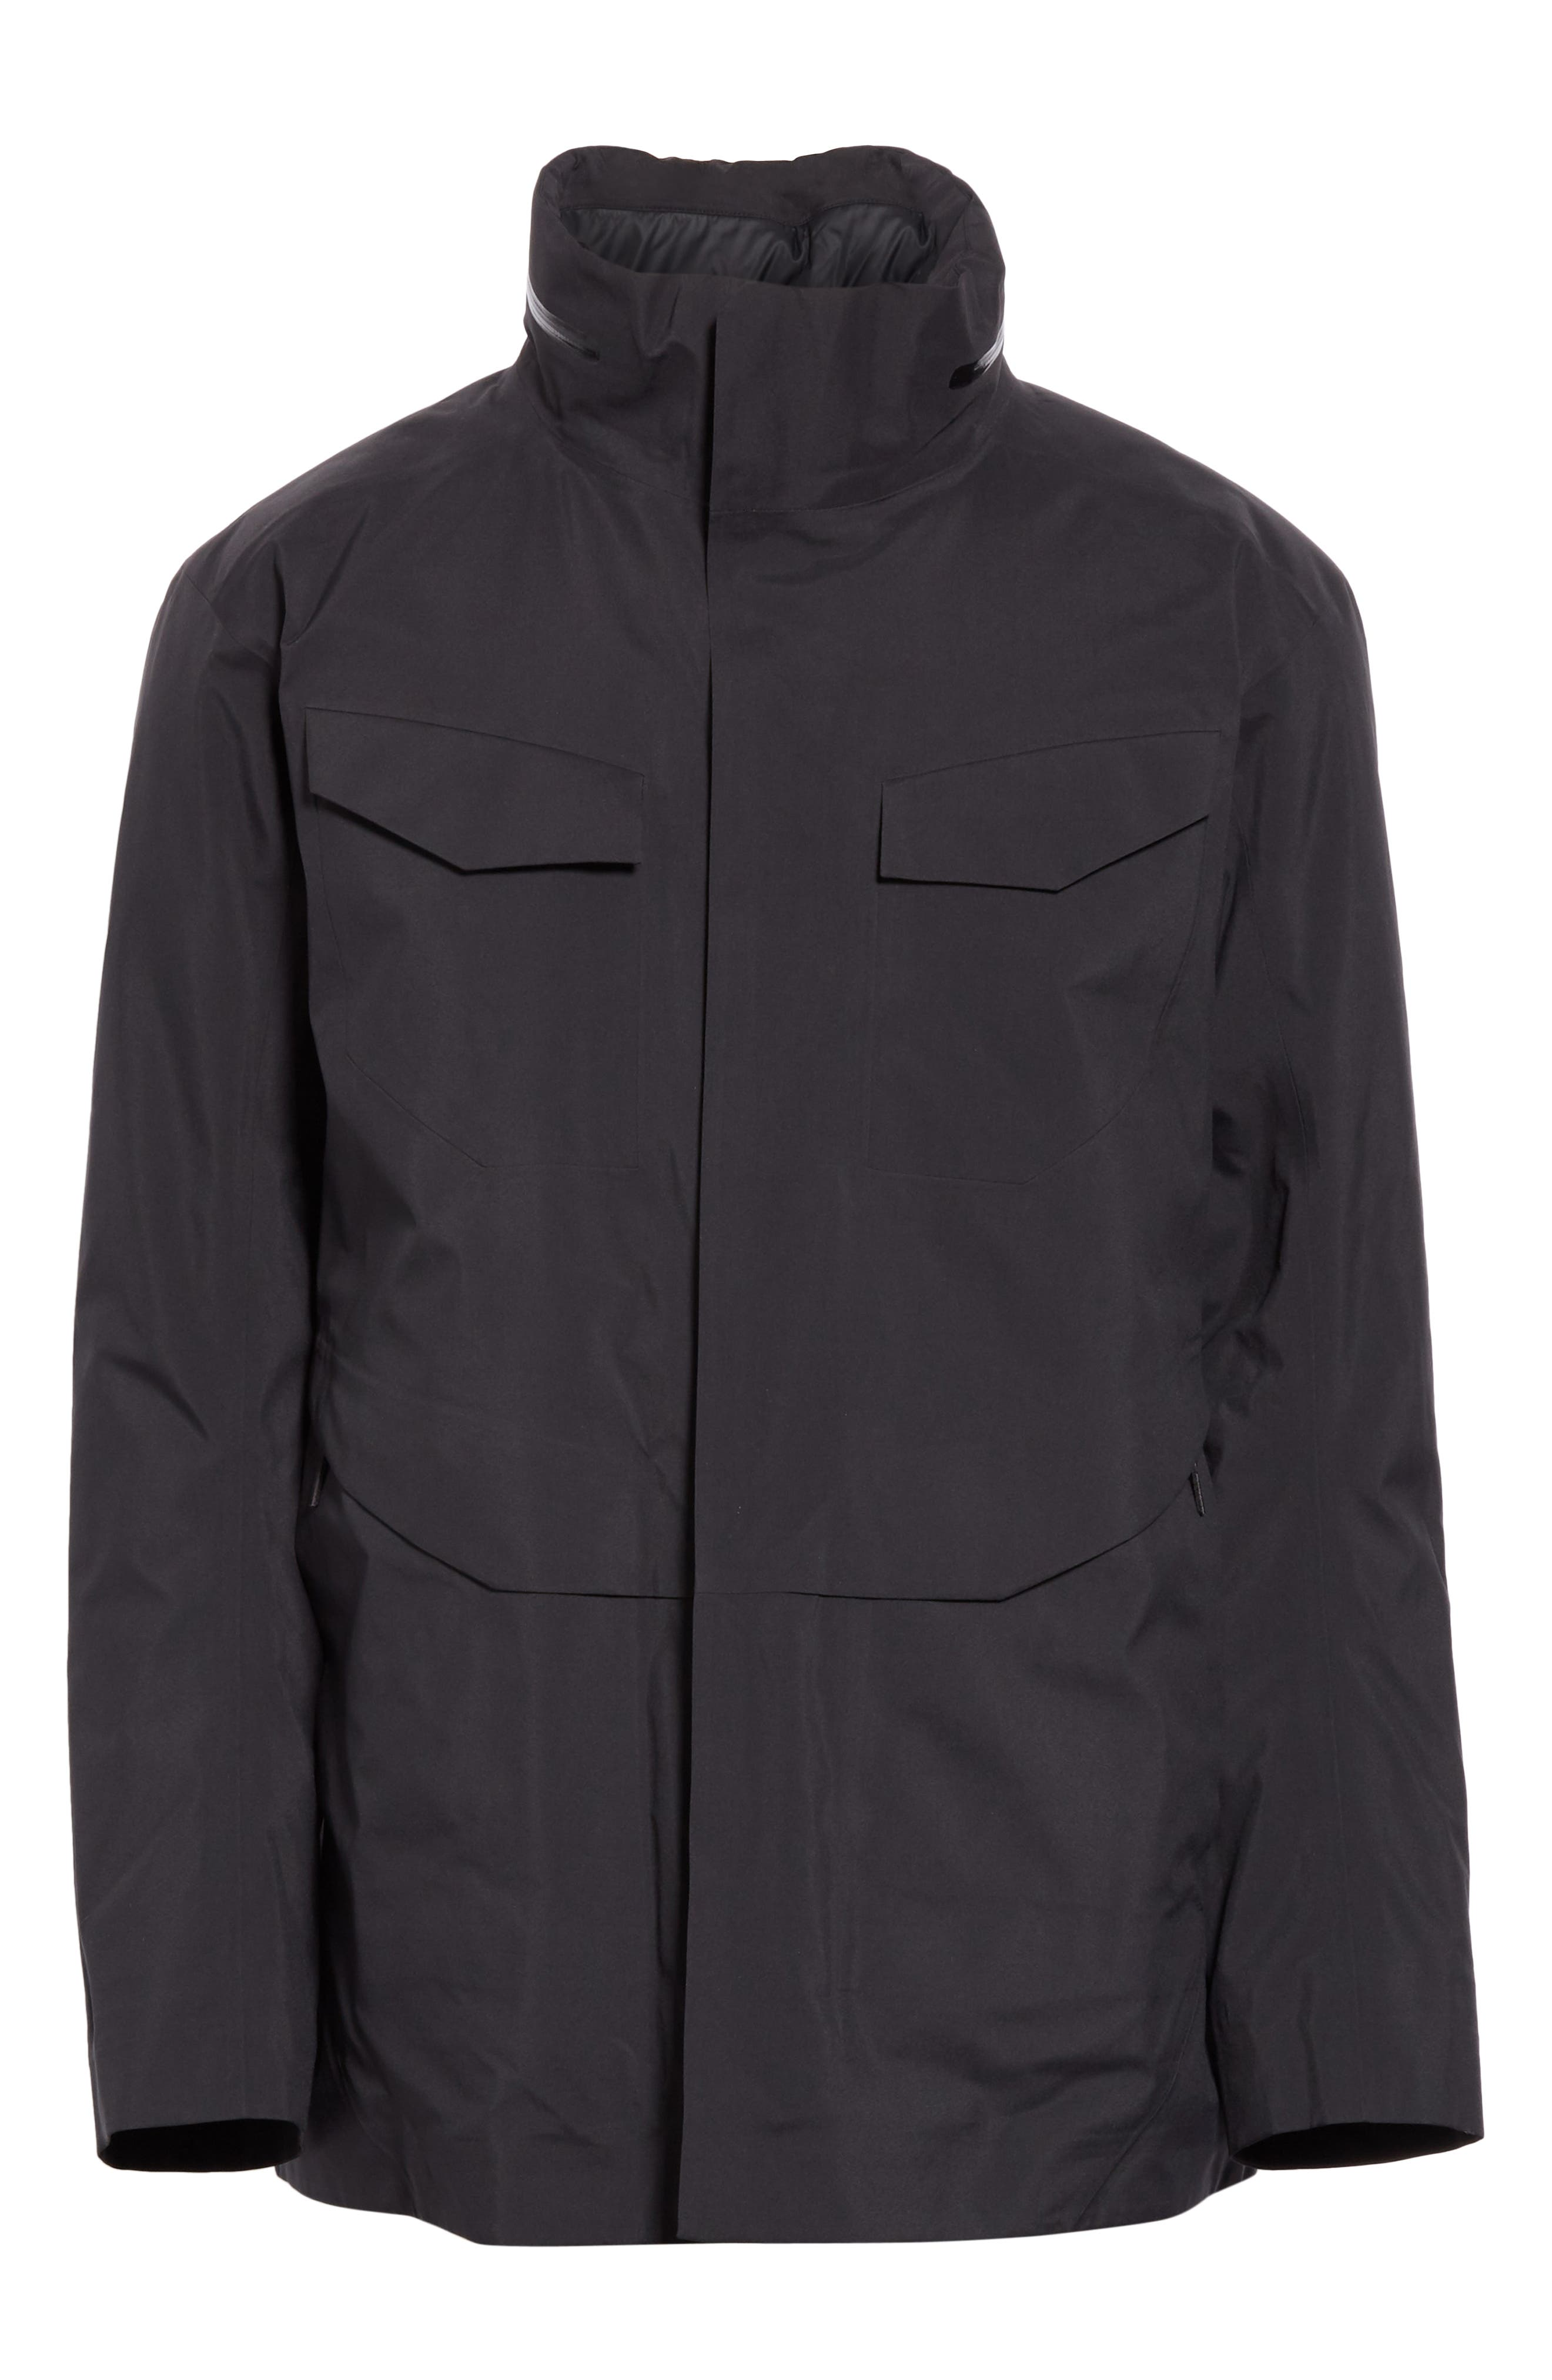 Gore-Tex<sup>®</sup> Pro Waterproof/Windproof Insulated Field Jacket,                             Main thumbnail 1, color,                             BLACK